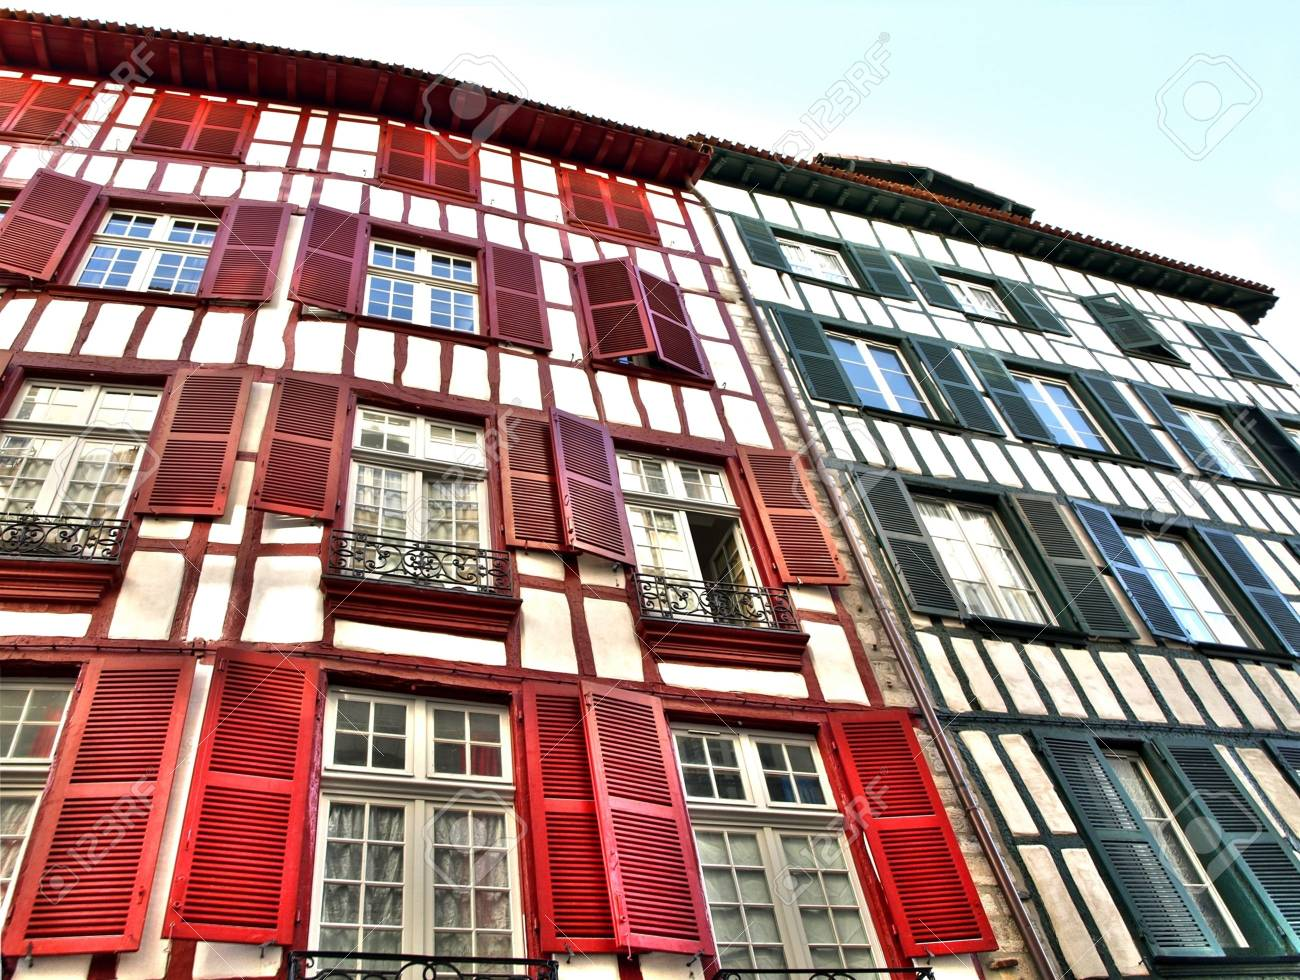 Colorful house in Bayonne France Stock Photo - 2508521